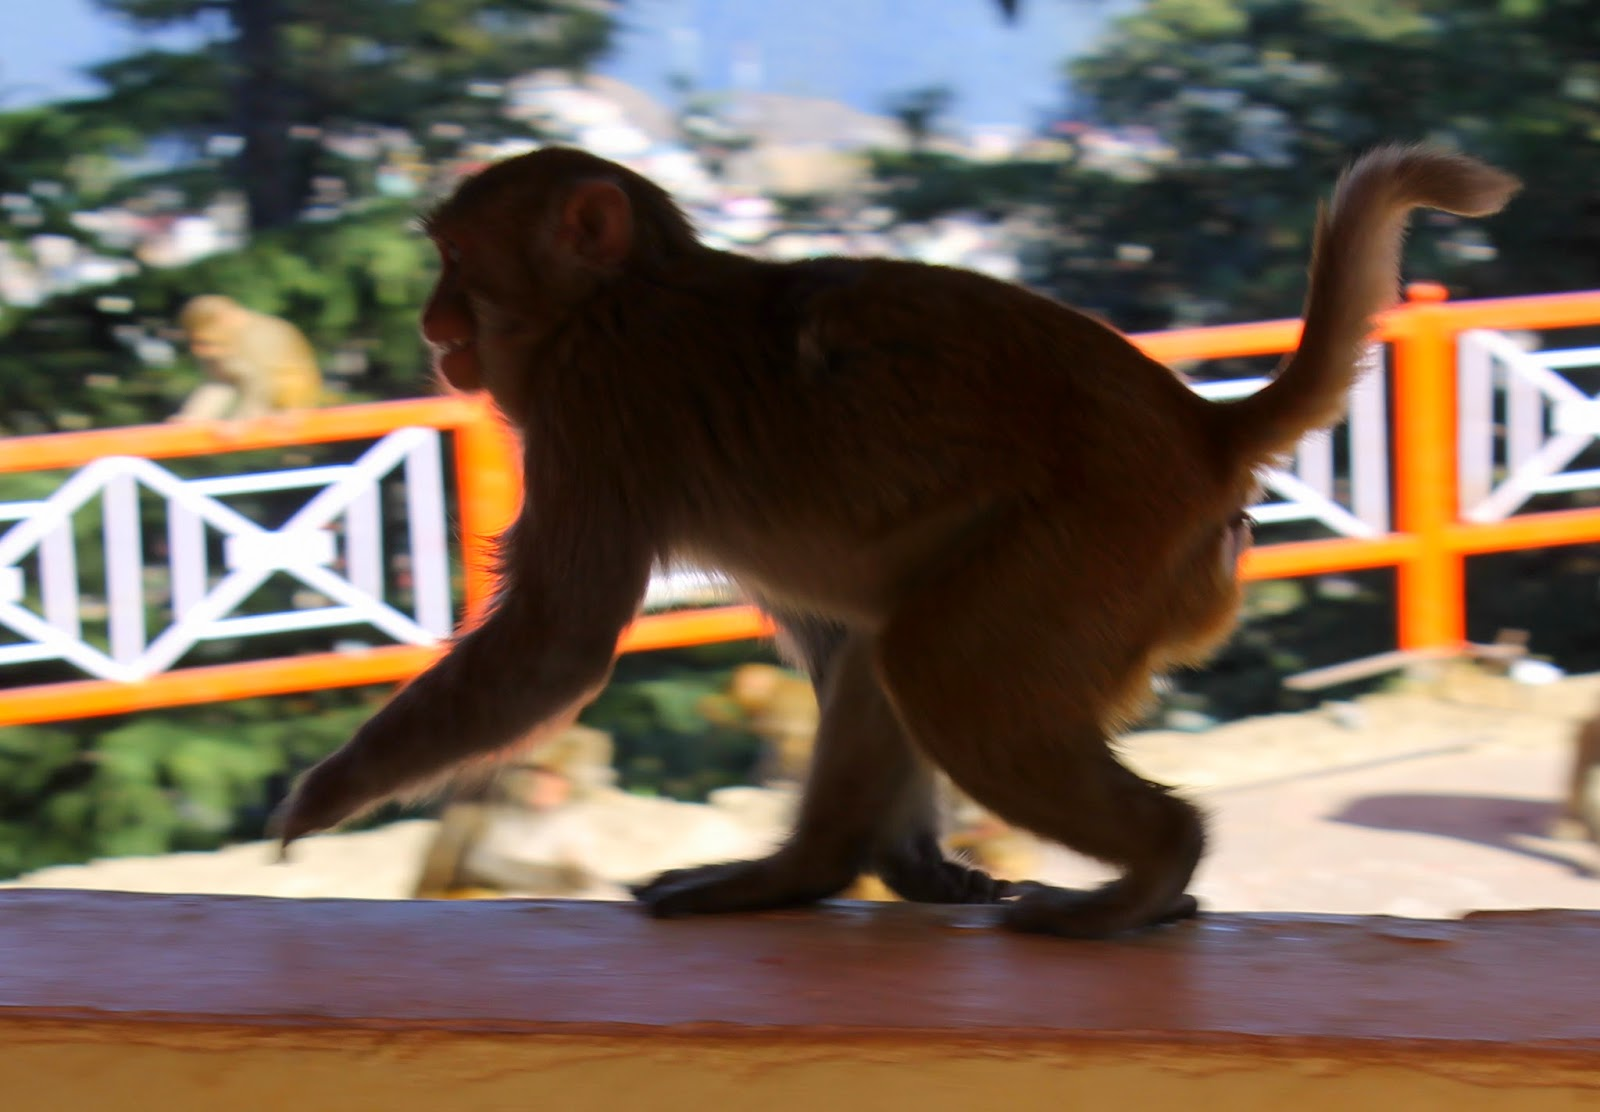 233ee62896 The Monkeys of Shimla | Passages From India